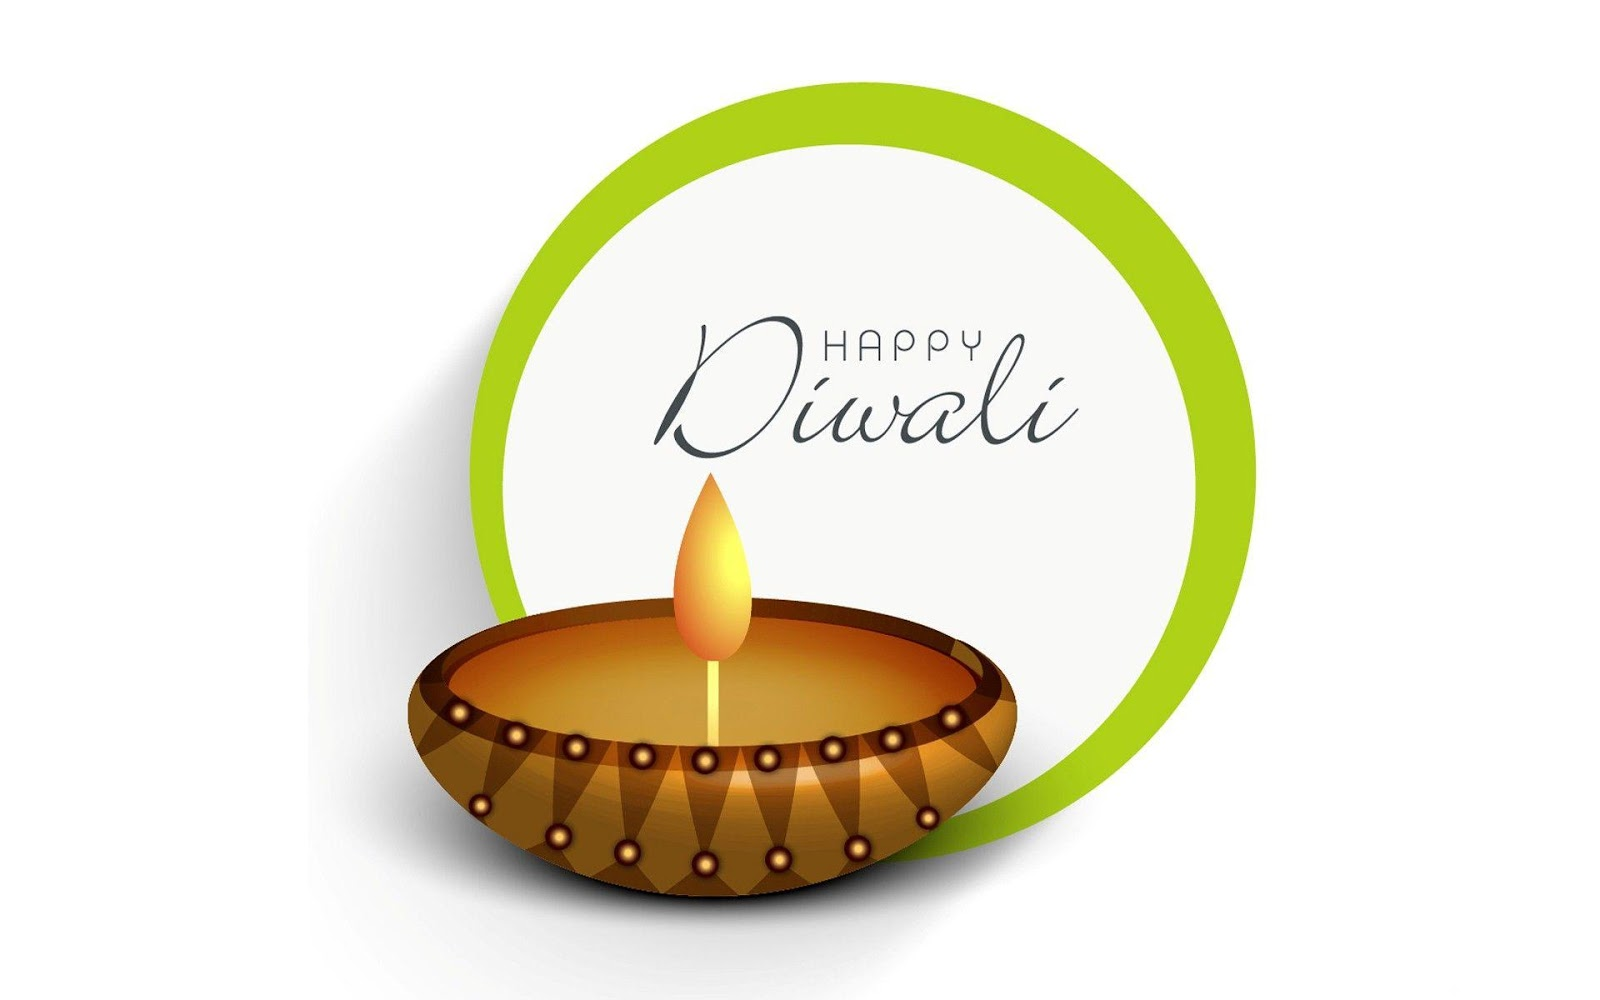 Happy Diwali Images Wishes Greetings Messages In Marathi Tamil Hindi